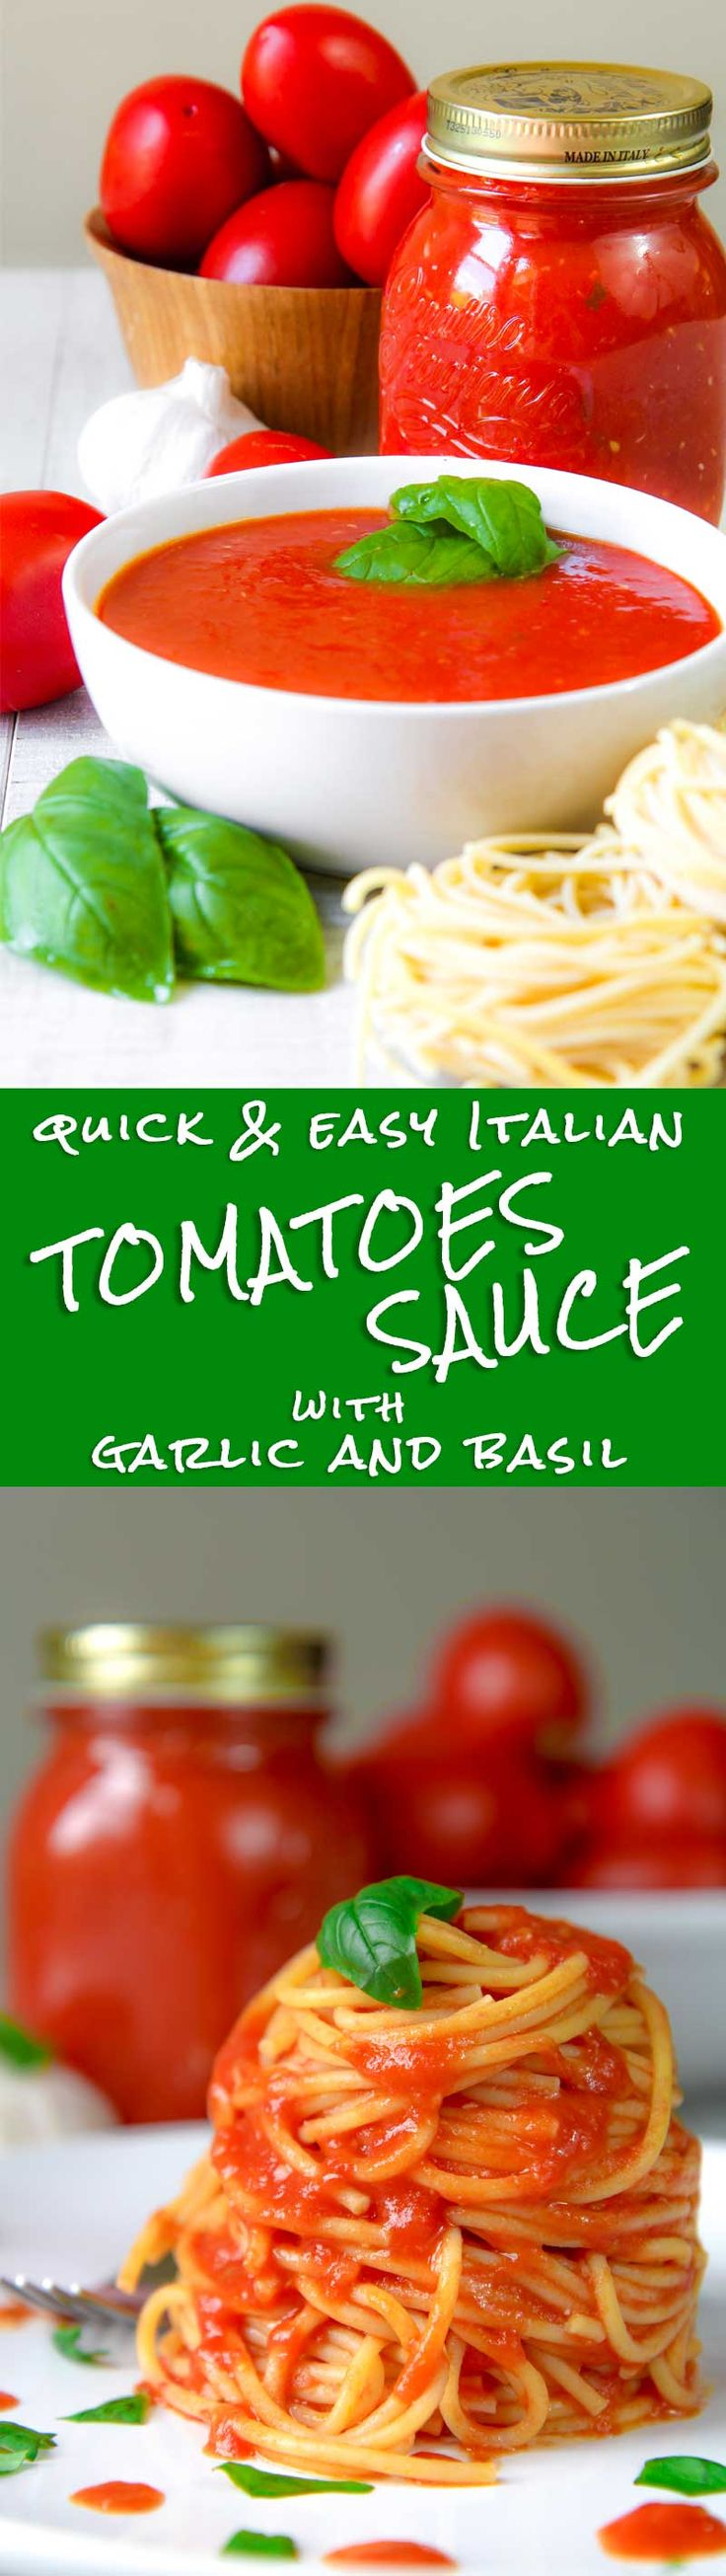 EASY TOMATOES SAUCE ITALIAN WAY with garlic and fresh basil - This Easy tomatoes sauce is so tasty and fast to prepare! Tomatoes are cooked along with garlic and sweet basil, just the time to soft them. The more tomatoes are ripe, the more sauce will be delicious! To prepare this recipe a vegetable mill is not mandatory, but I strongly suggest to use it. A blender works fine as well, but the sauce texture will be not the same! TAGS: vegan, healthy, Italian, recipes, family, dinner